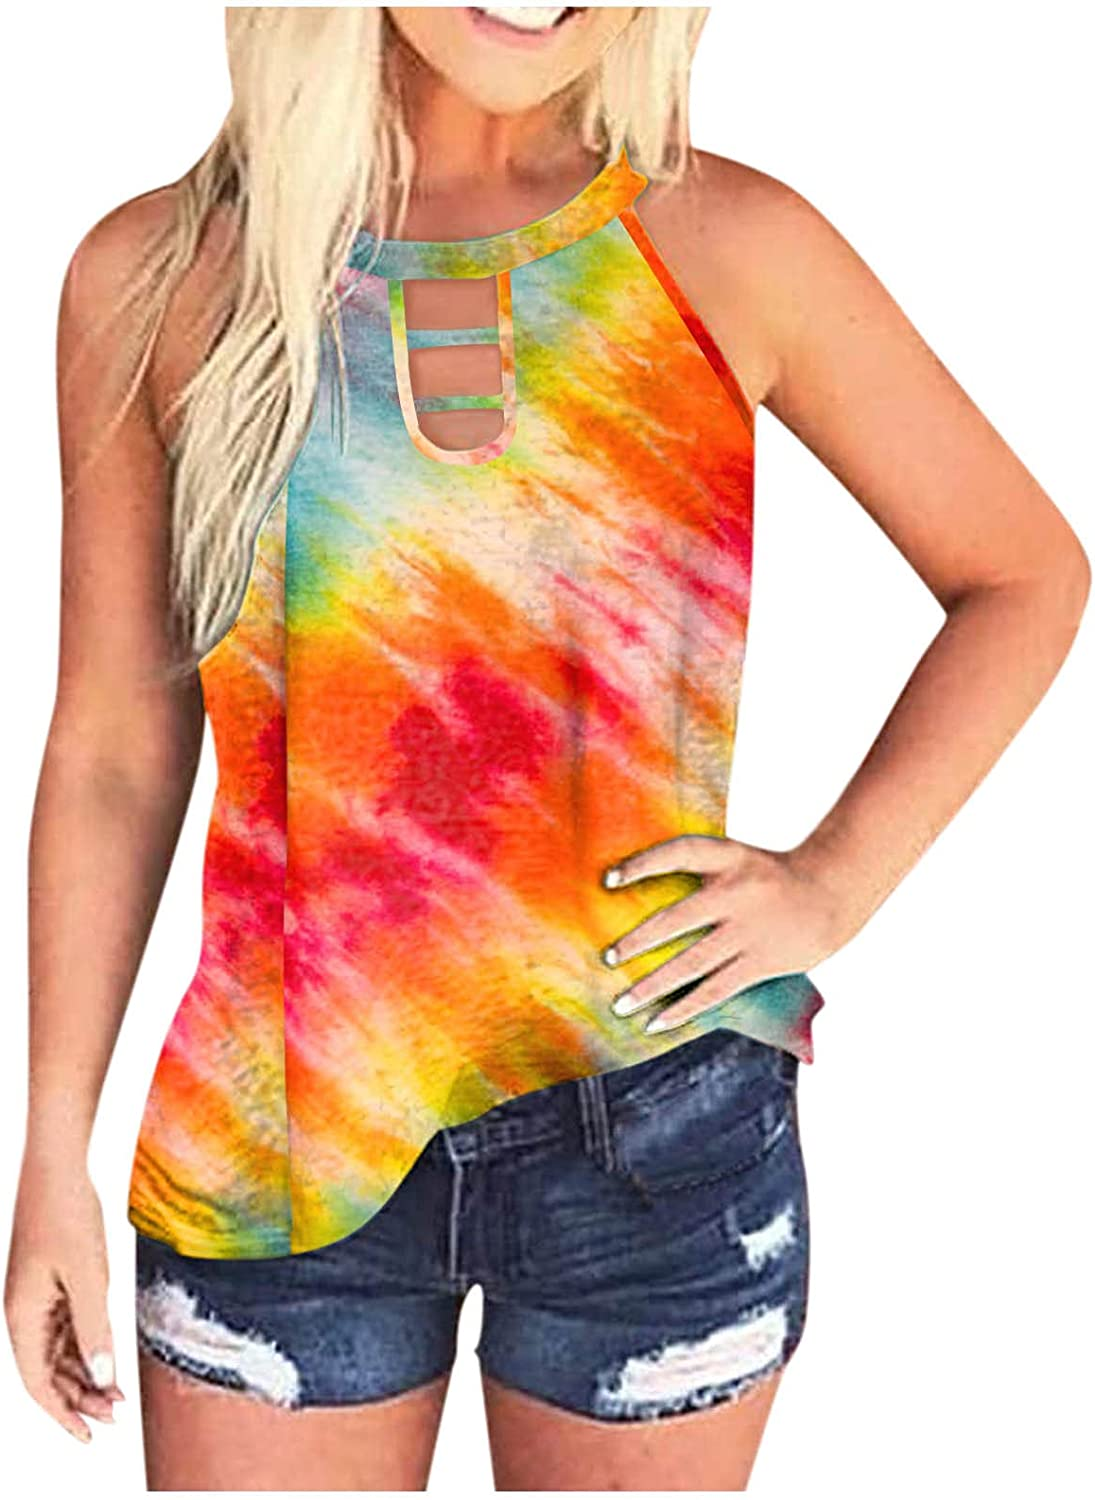 Sleeveless Tops for Women Dressy,Women Tank Tops Summer Scoop Neck Camis Tops Sleeveless Ribbed Shirts Racerback Blouses Camisole